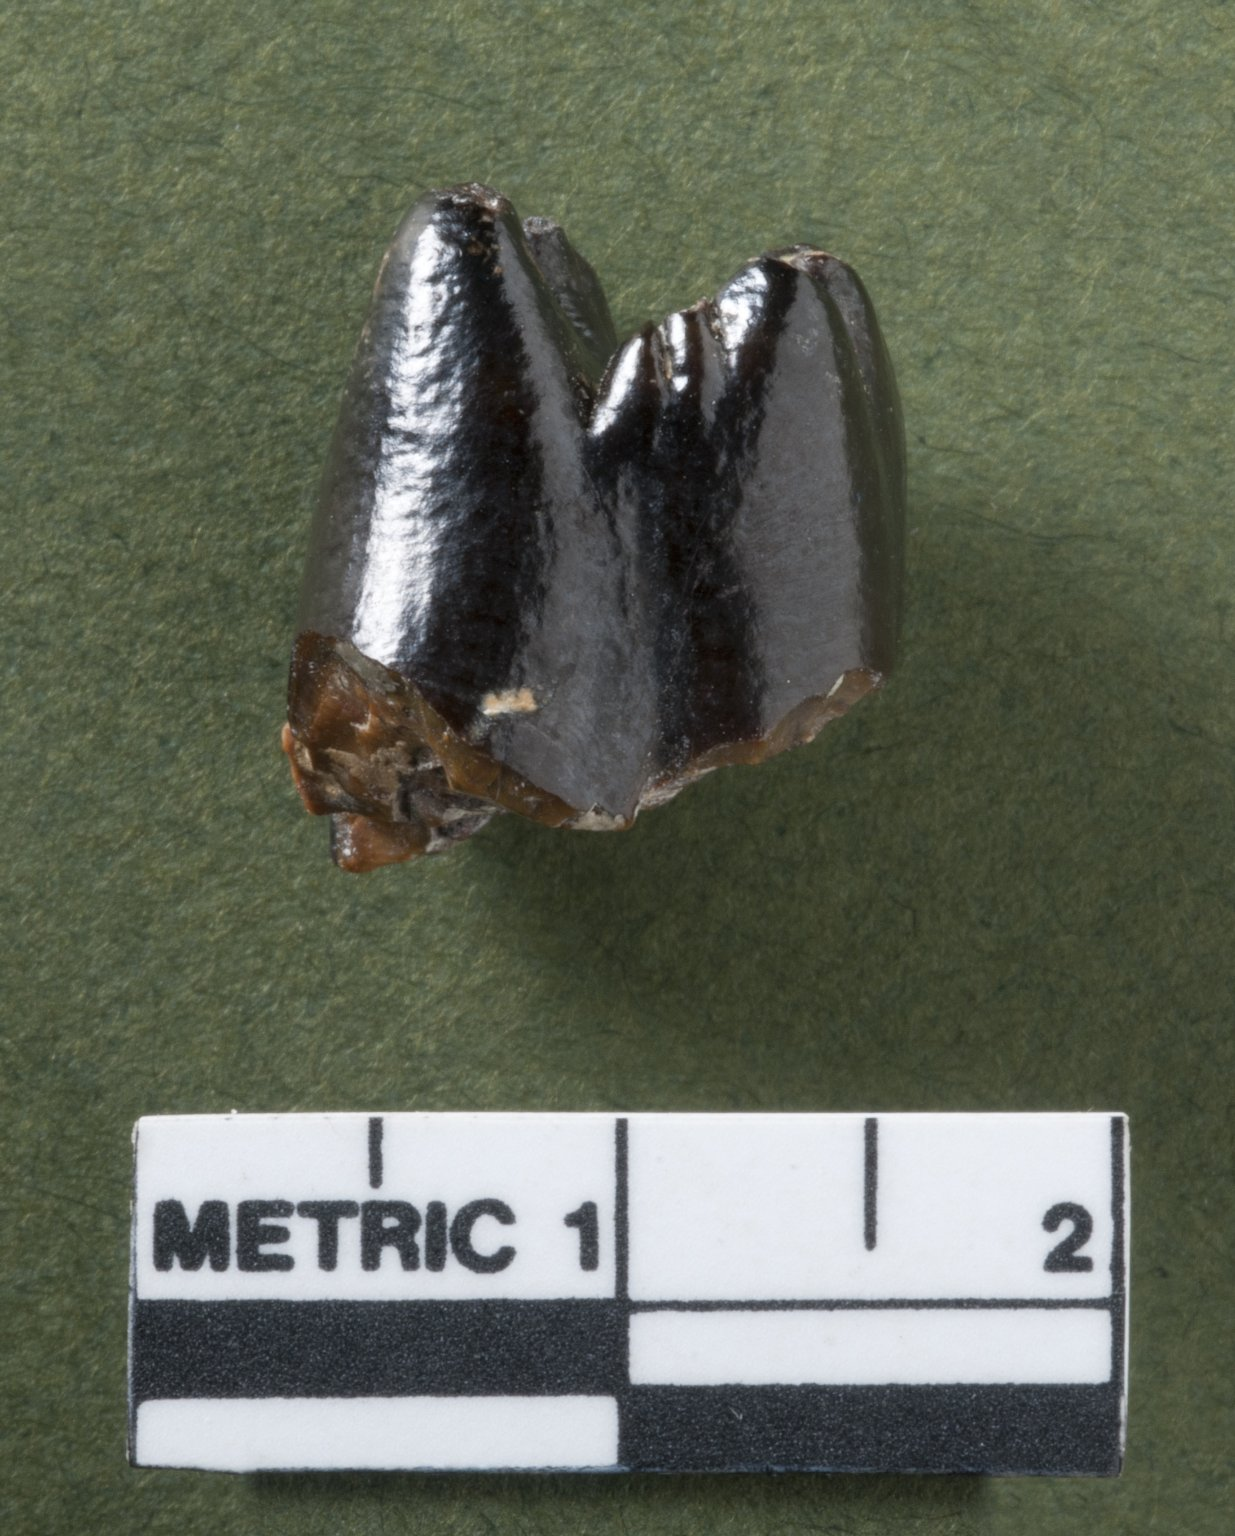 Stylinodon teeth, rotated view